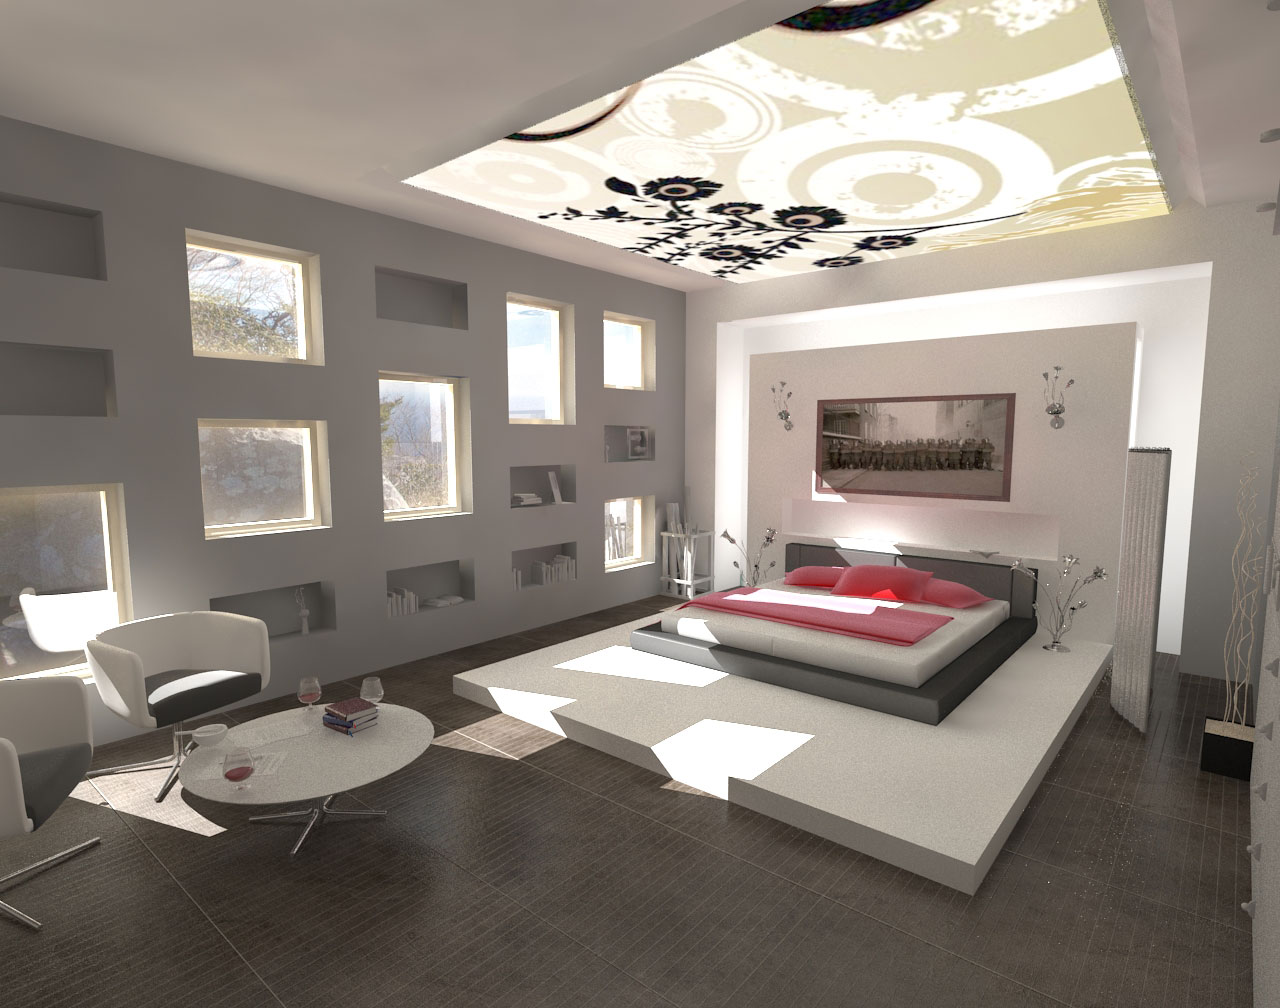 Decorations minimalist design modern bedroom interior for Modern minimalist furniture